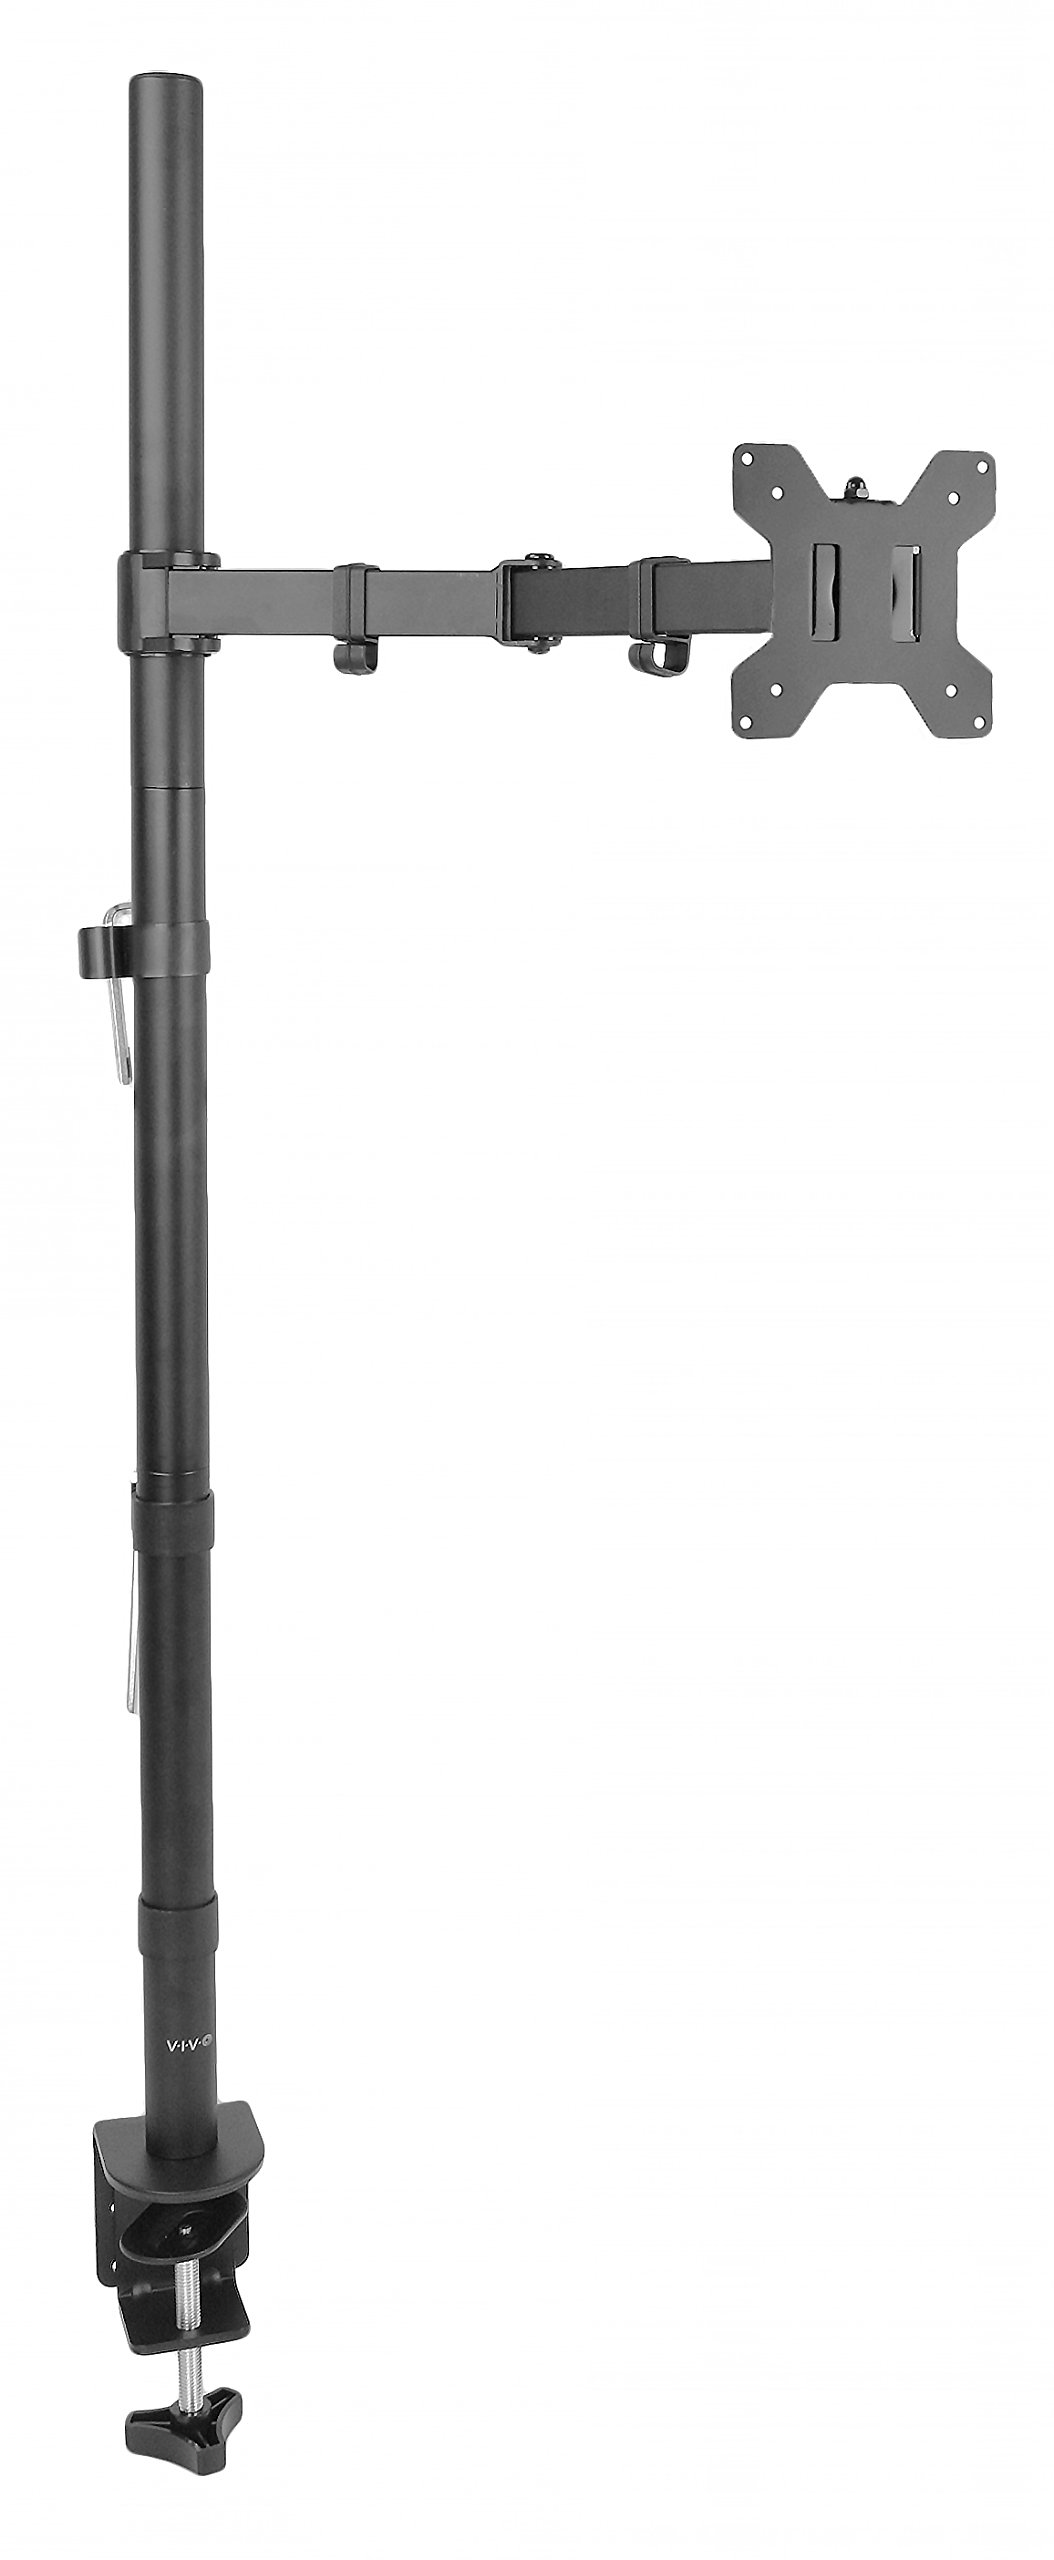 VIVO Single Monitor Stand up Mount Extra Tall 39'' Pole Adjustable Stand / Fits One Screen up to 27'' (STAND-V011)